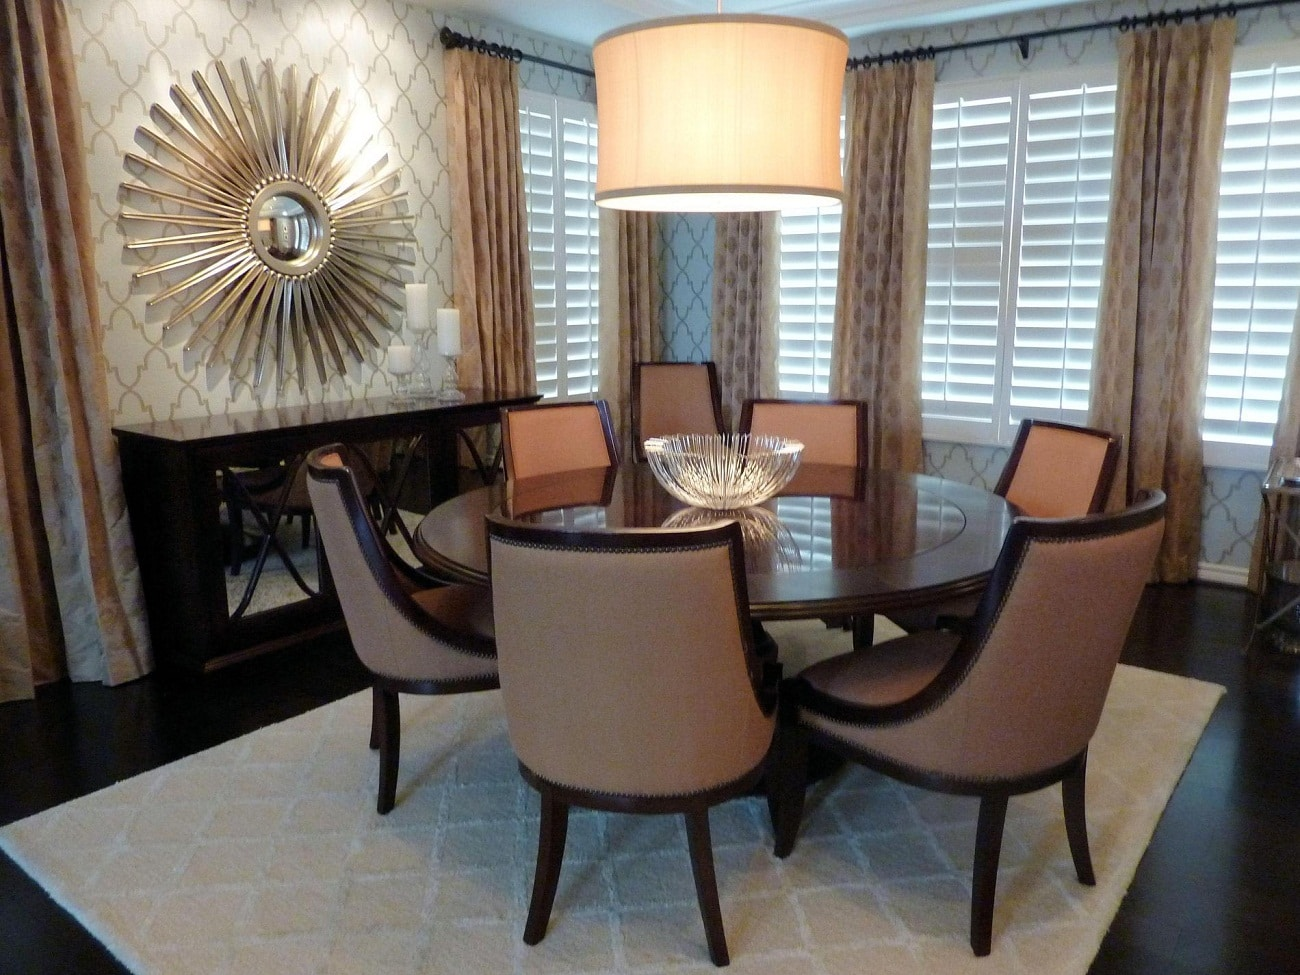 Home decor dining room ideas living room decor ideas for Living room ideas with dining table